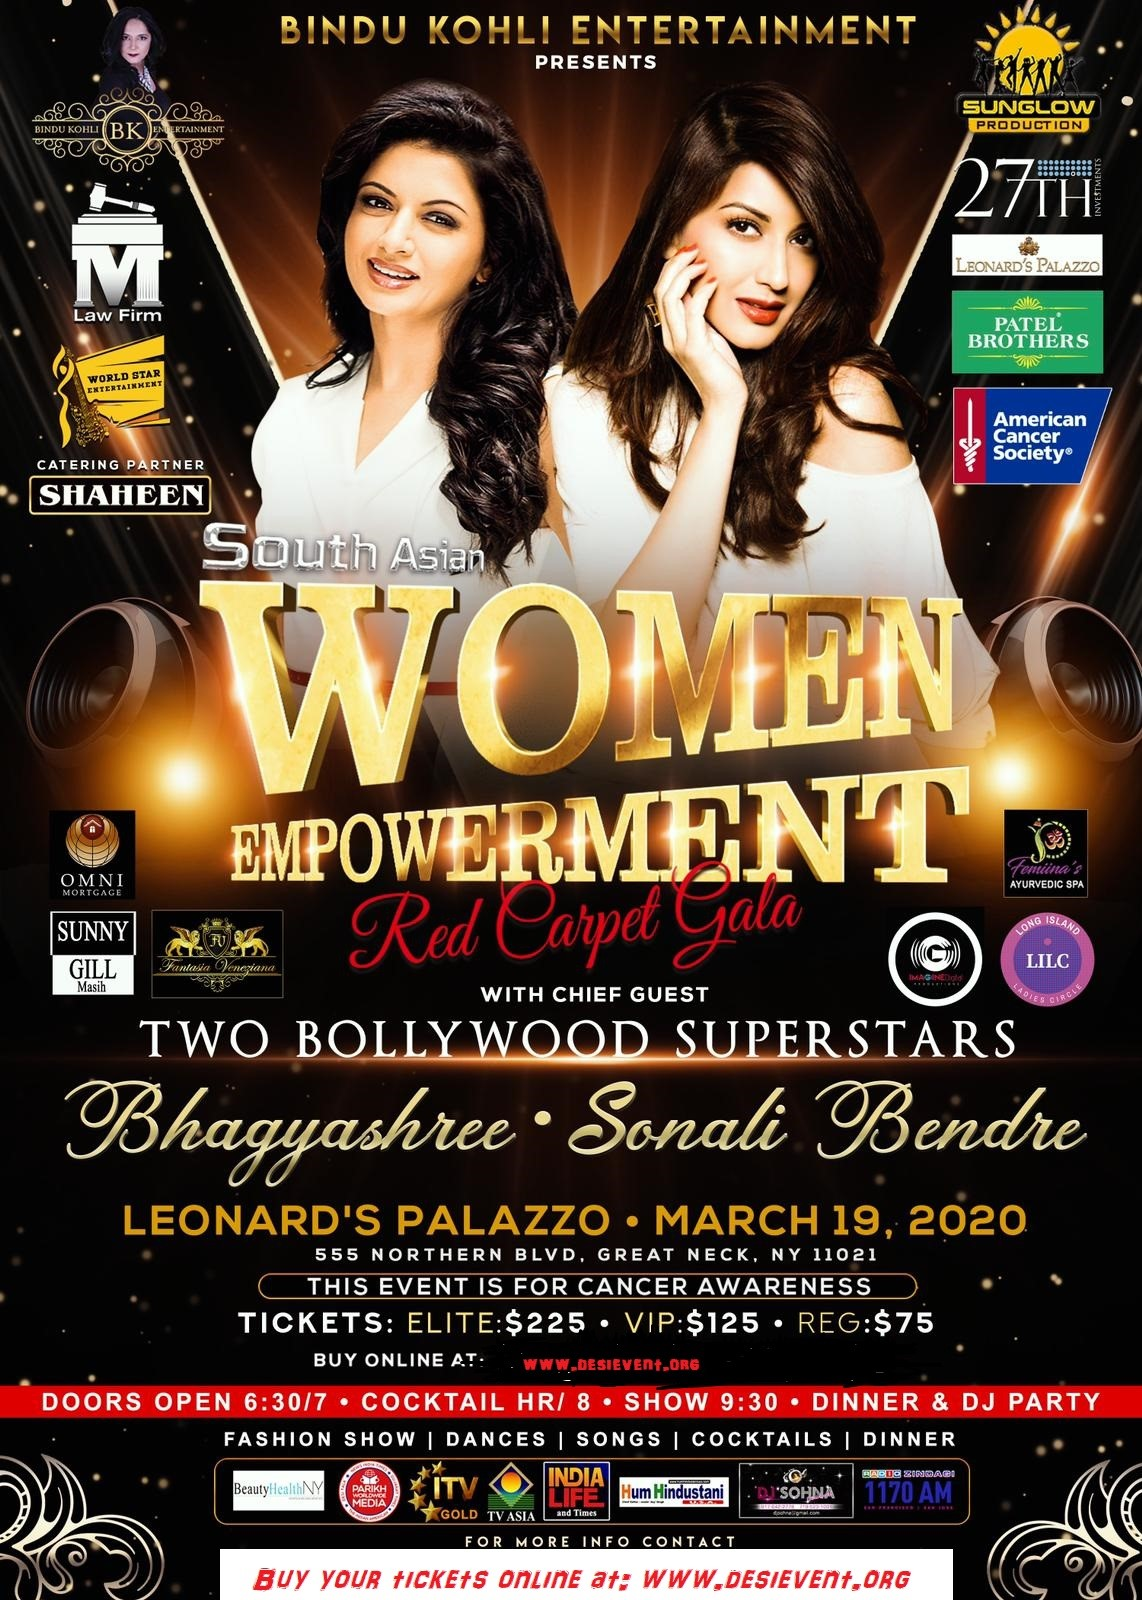 First Time In USA Two Amazing Bollywood Actresses Sonali Bendre and Bhagyashree At New York March 19th on Mar 19, 20:00@Leonard's Palazzo - Buy tickets and Get information on Desi Events desievent.org